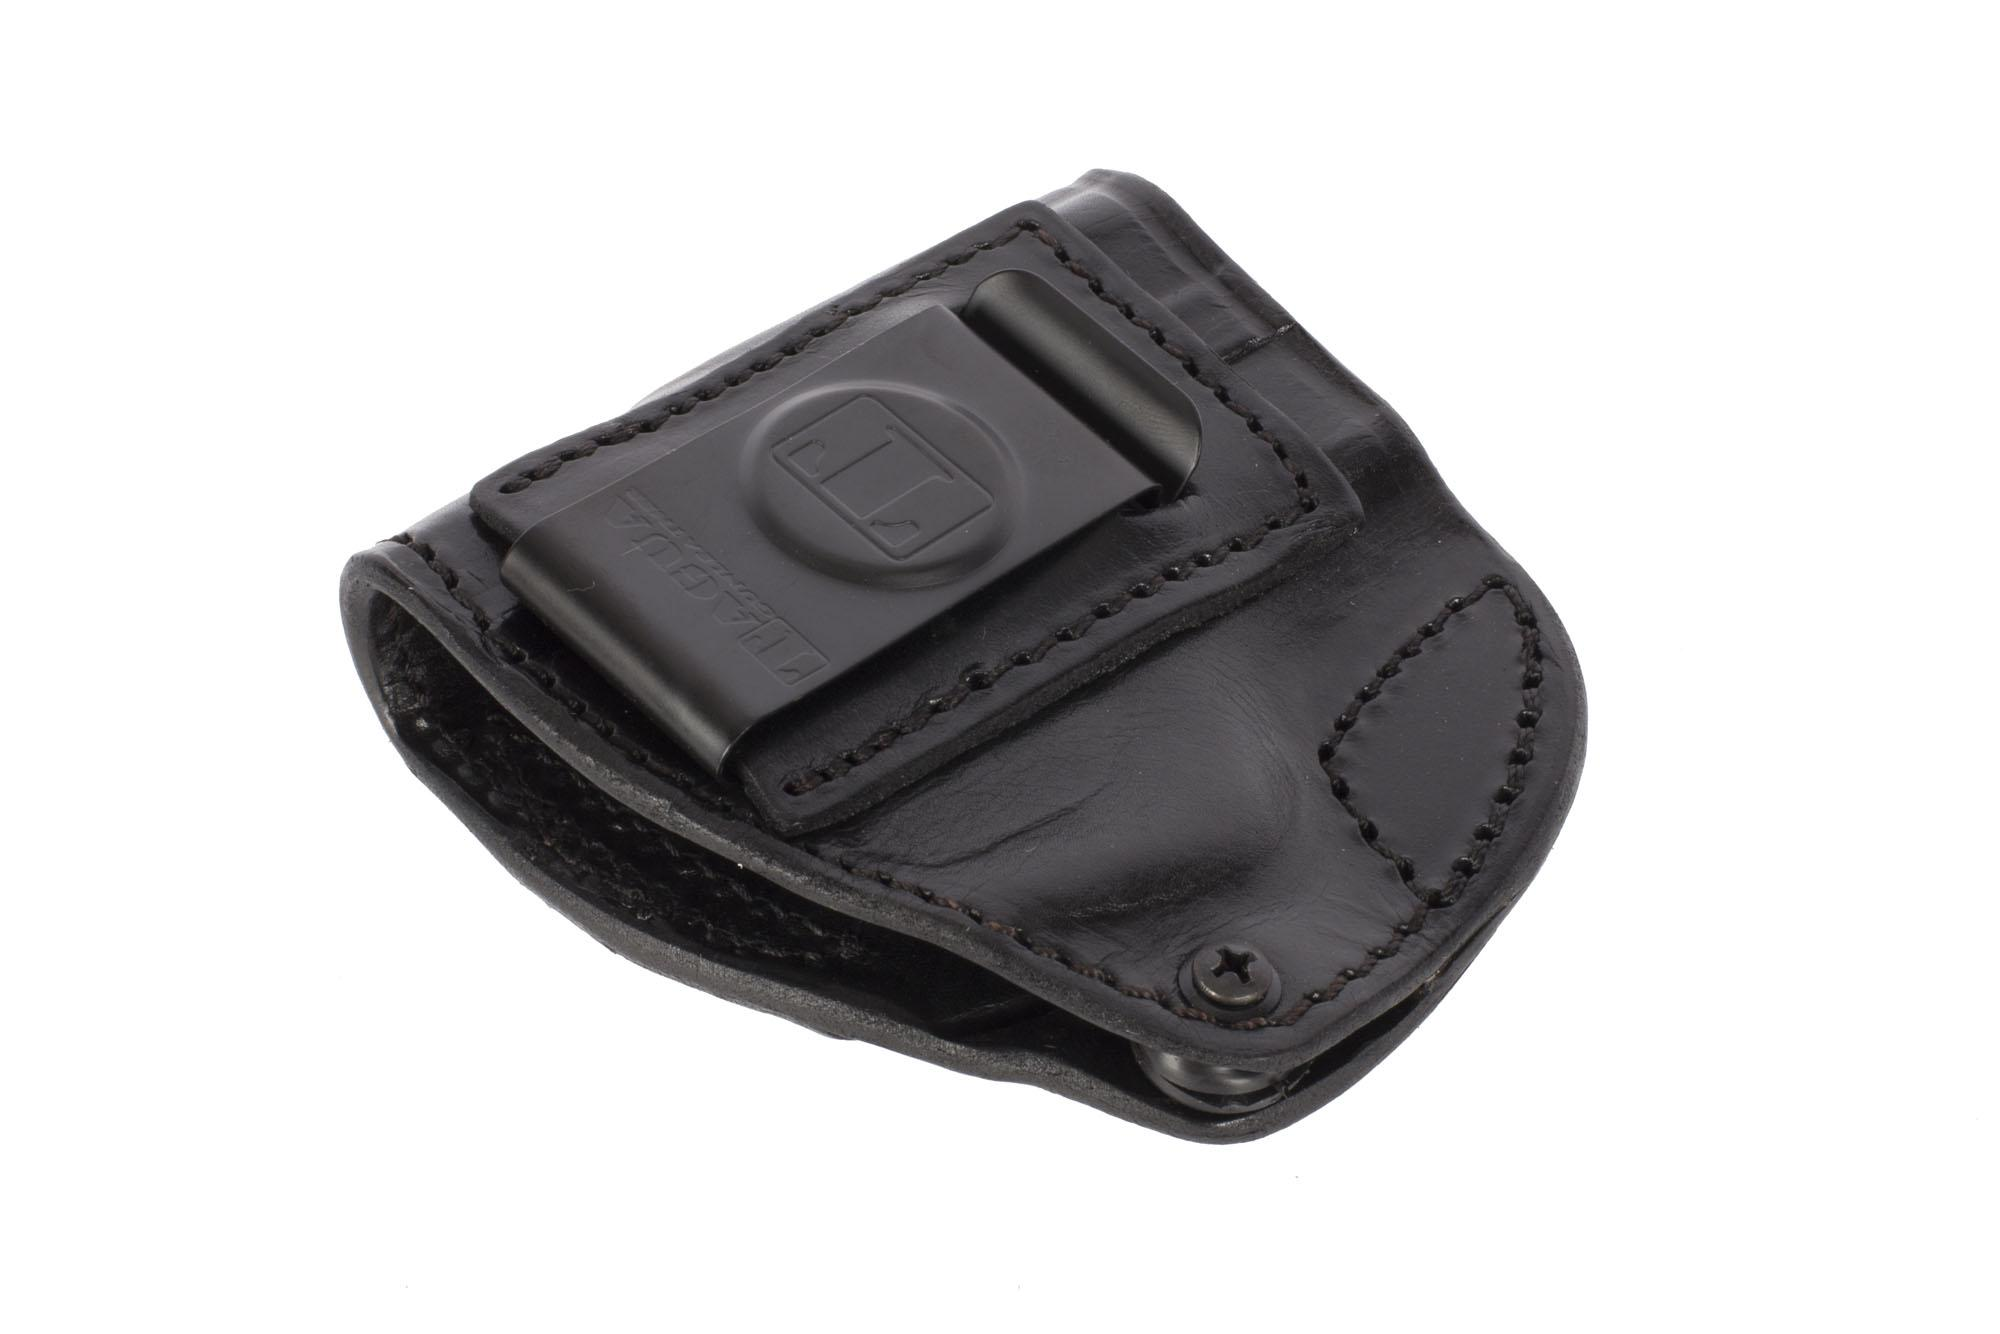 Tagua IPH4 4-In-1 IWB Holster - S&W M&P Shield - Right Hand - Black